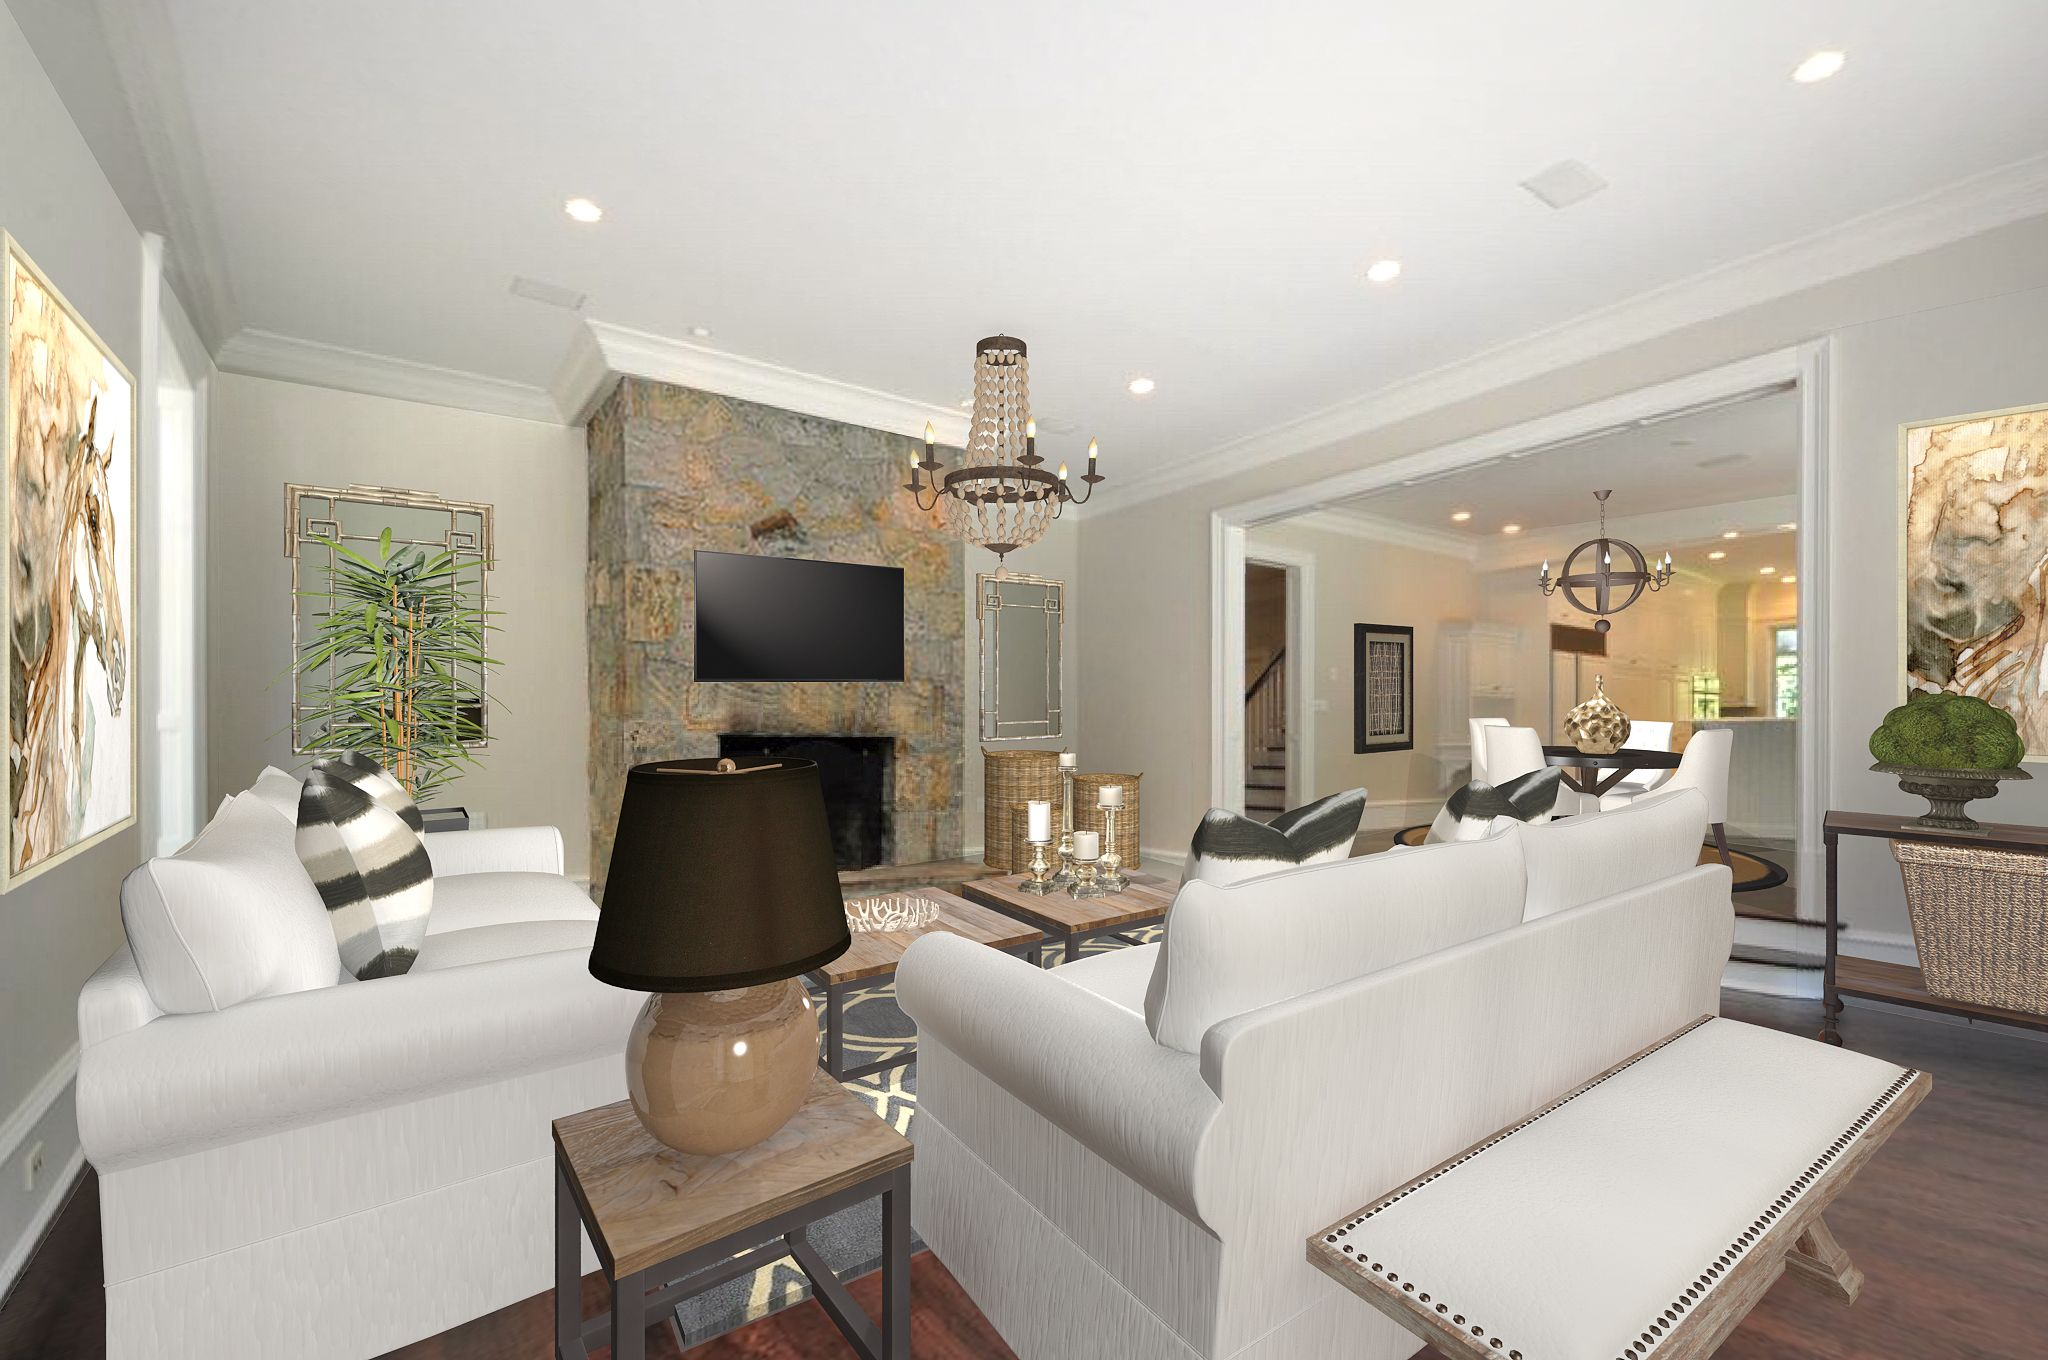 Design Your Living Room App Brilliant This Gorgeous Room Was Created In 3D Using The Rooomy Appall Inspiration Design